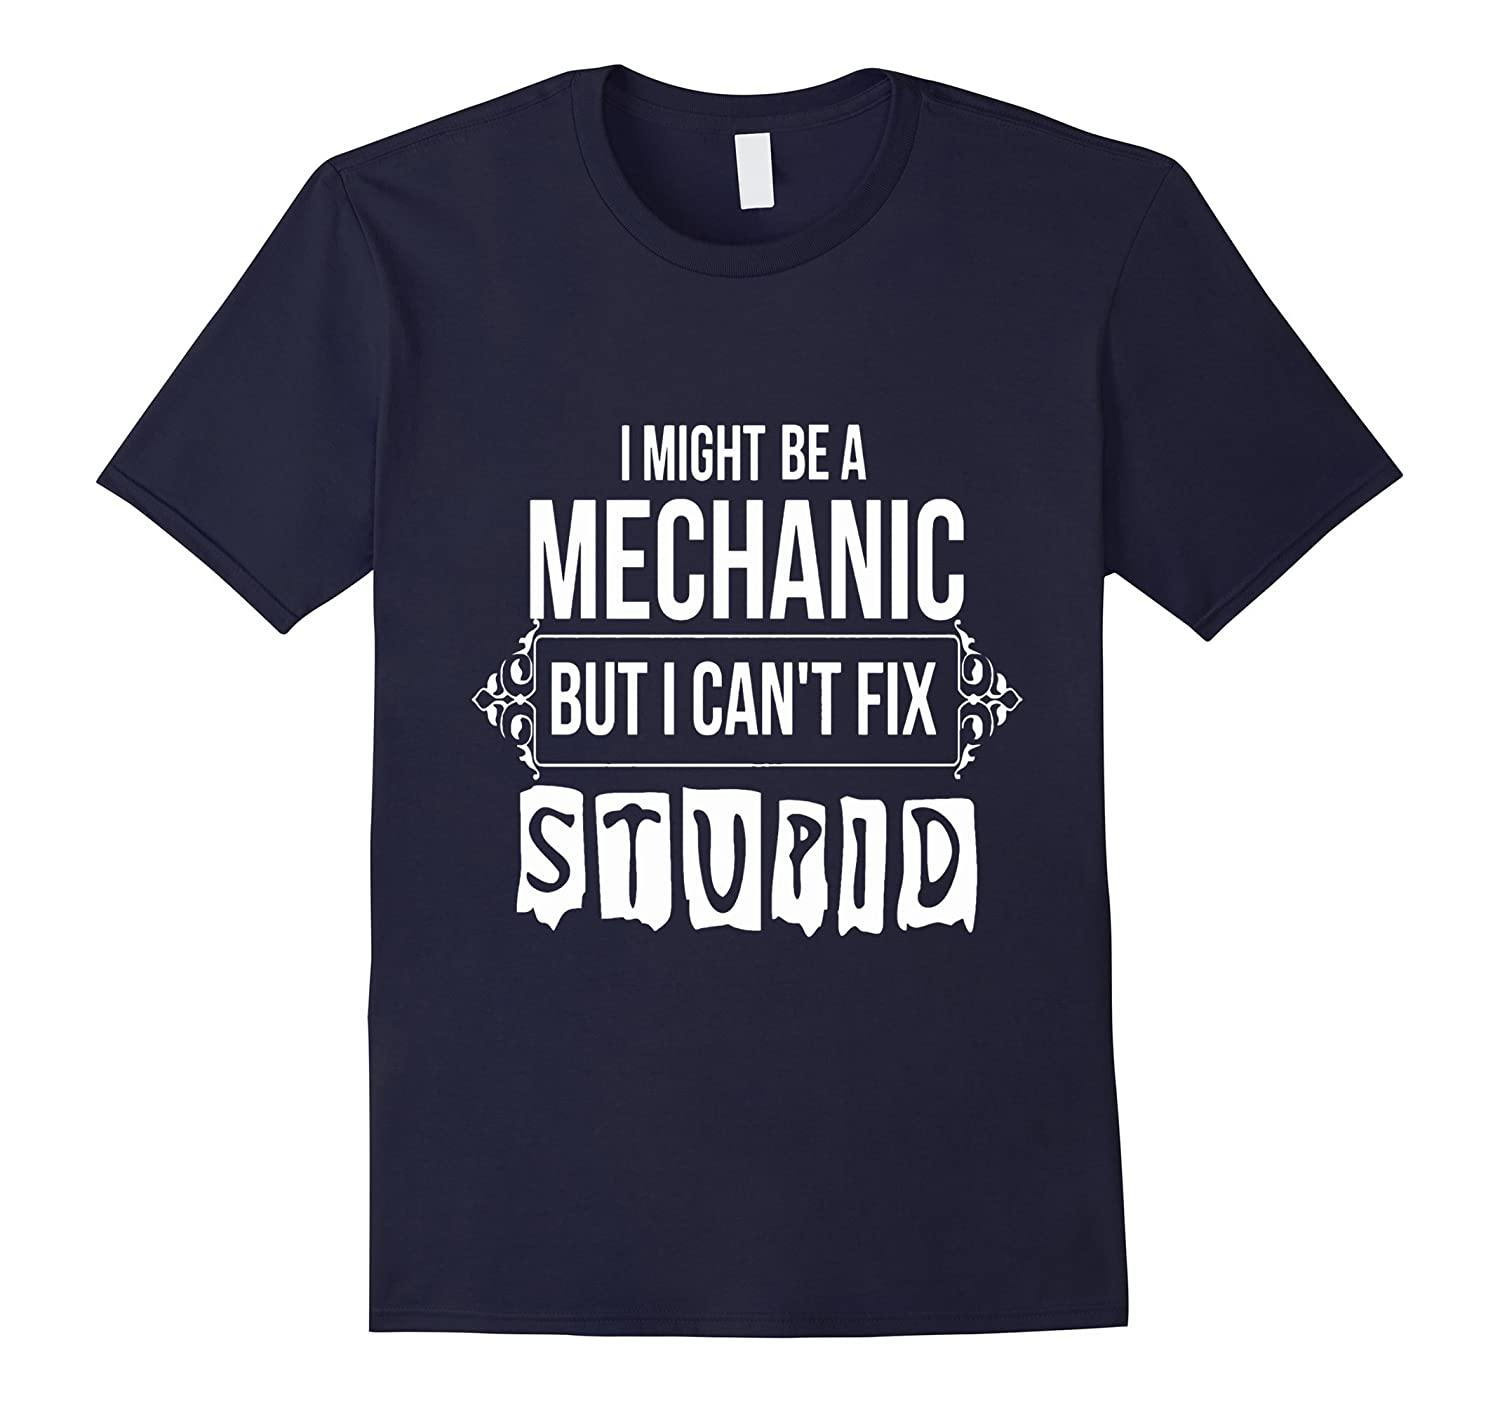 Engineer shirt I MIGHT BE A MECHANIC BUT I CANT FIX STUPID-RT